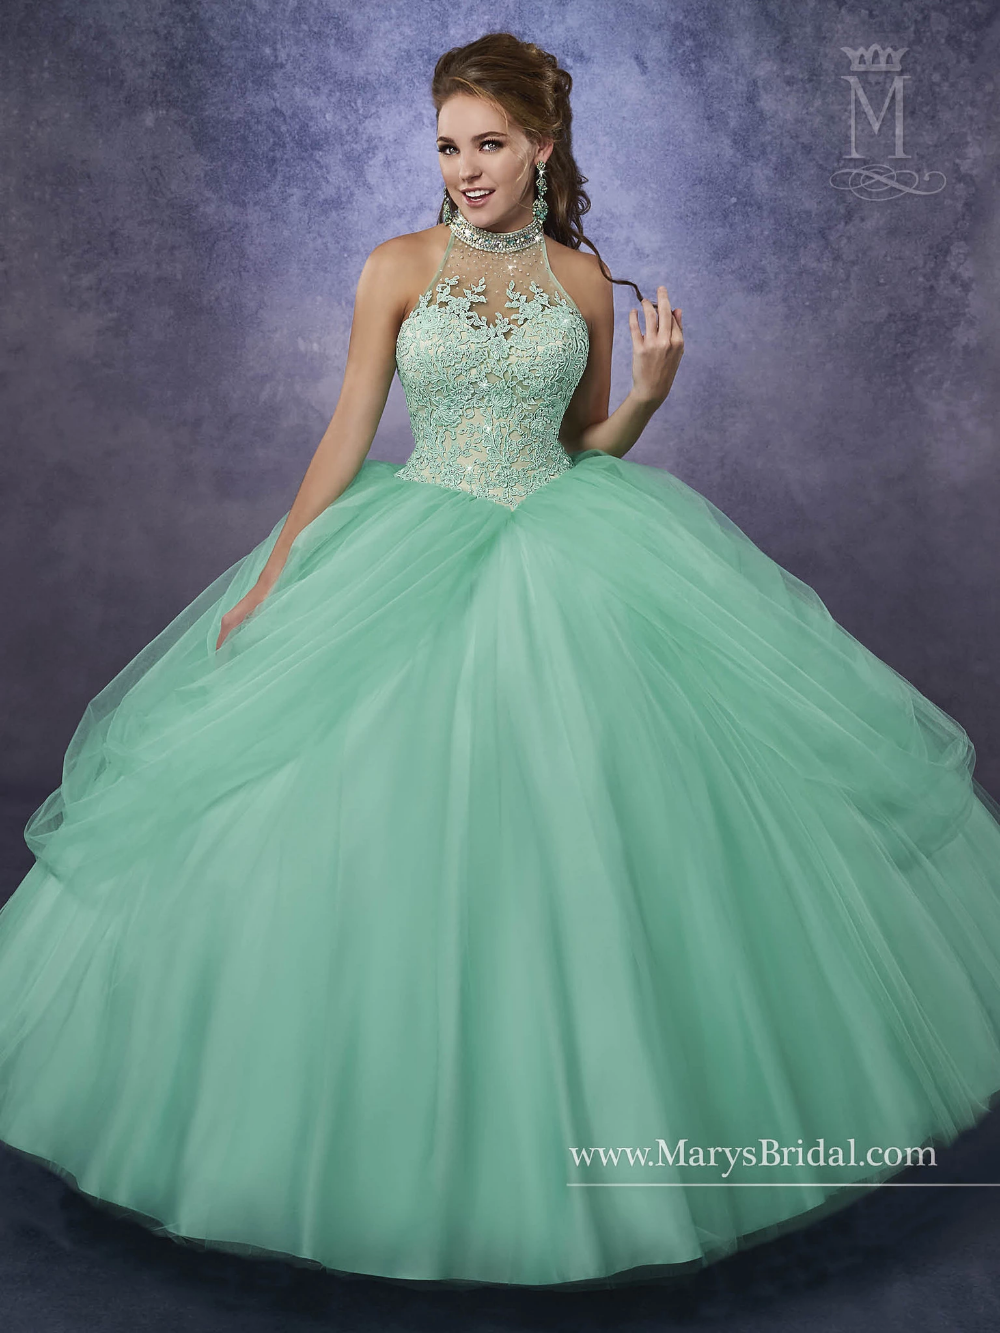 Mary's Bridal Princess Collection Quinceanera Dress Style 4Q474 - Quincenera dresses, Quinceanera dresses, Quince dresses, Prom dresses ball gown, Sweet 16 dresses, Ball gowns - Elegant and timeless, light up the room in a Mary's Bridal Princess Collection Quinceanera Dress Style 4Q474 at your Sweet 15 party or at any formal event  Tulle quinceanera ball gown with beaded halter neck line, lace bodice, pannier skirt, laceup back, and sheer bolero  Colors Mint Green, Pink, or White Please allow 4  5 months for delivery because Mary's Bridal Quinceanera dresses are madetoorder  If you want to put this ball gown on Layaway, please select the  Pay 50% Deposit  option  How it works We divide the remaining balance of your item(s) equally into 3 months  Then every month, we notify you that we're going to process your monthly payment  If you'd like to pay more towards your balance, simply call or email us  It's that easy!